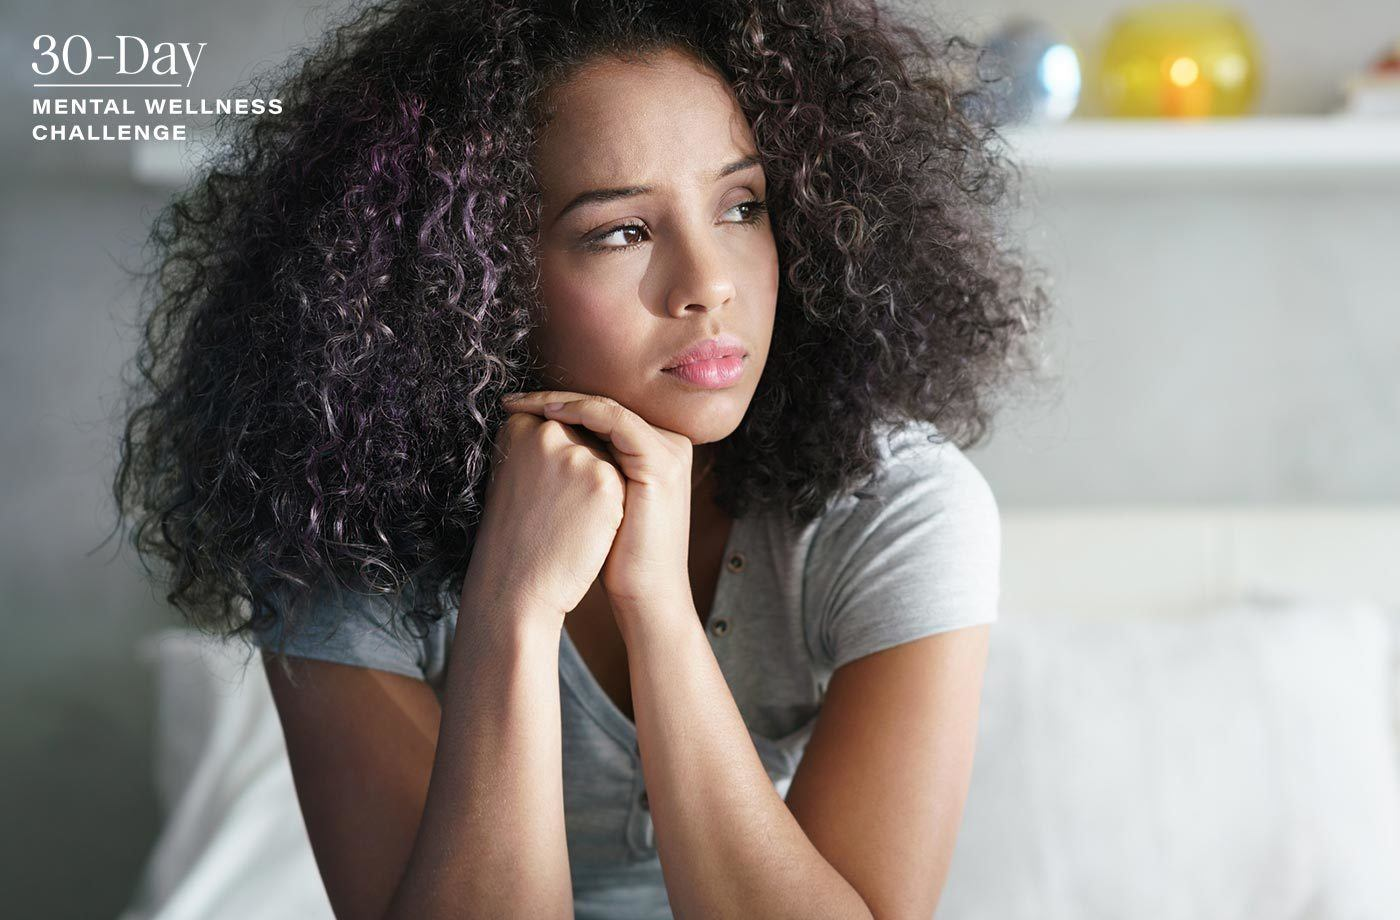 5 women with depression share what they wish they could have told themselves